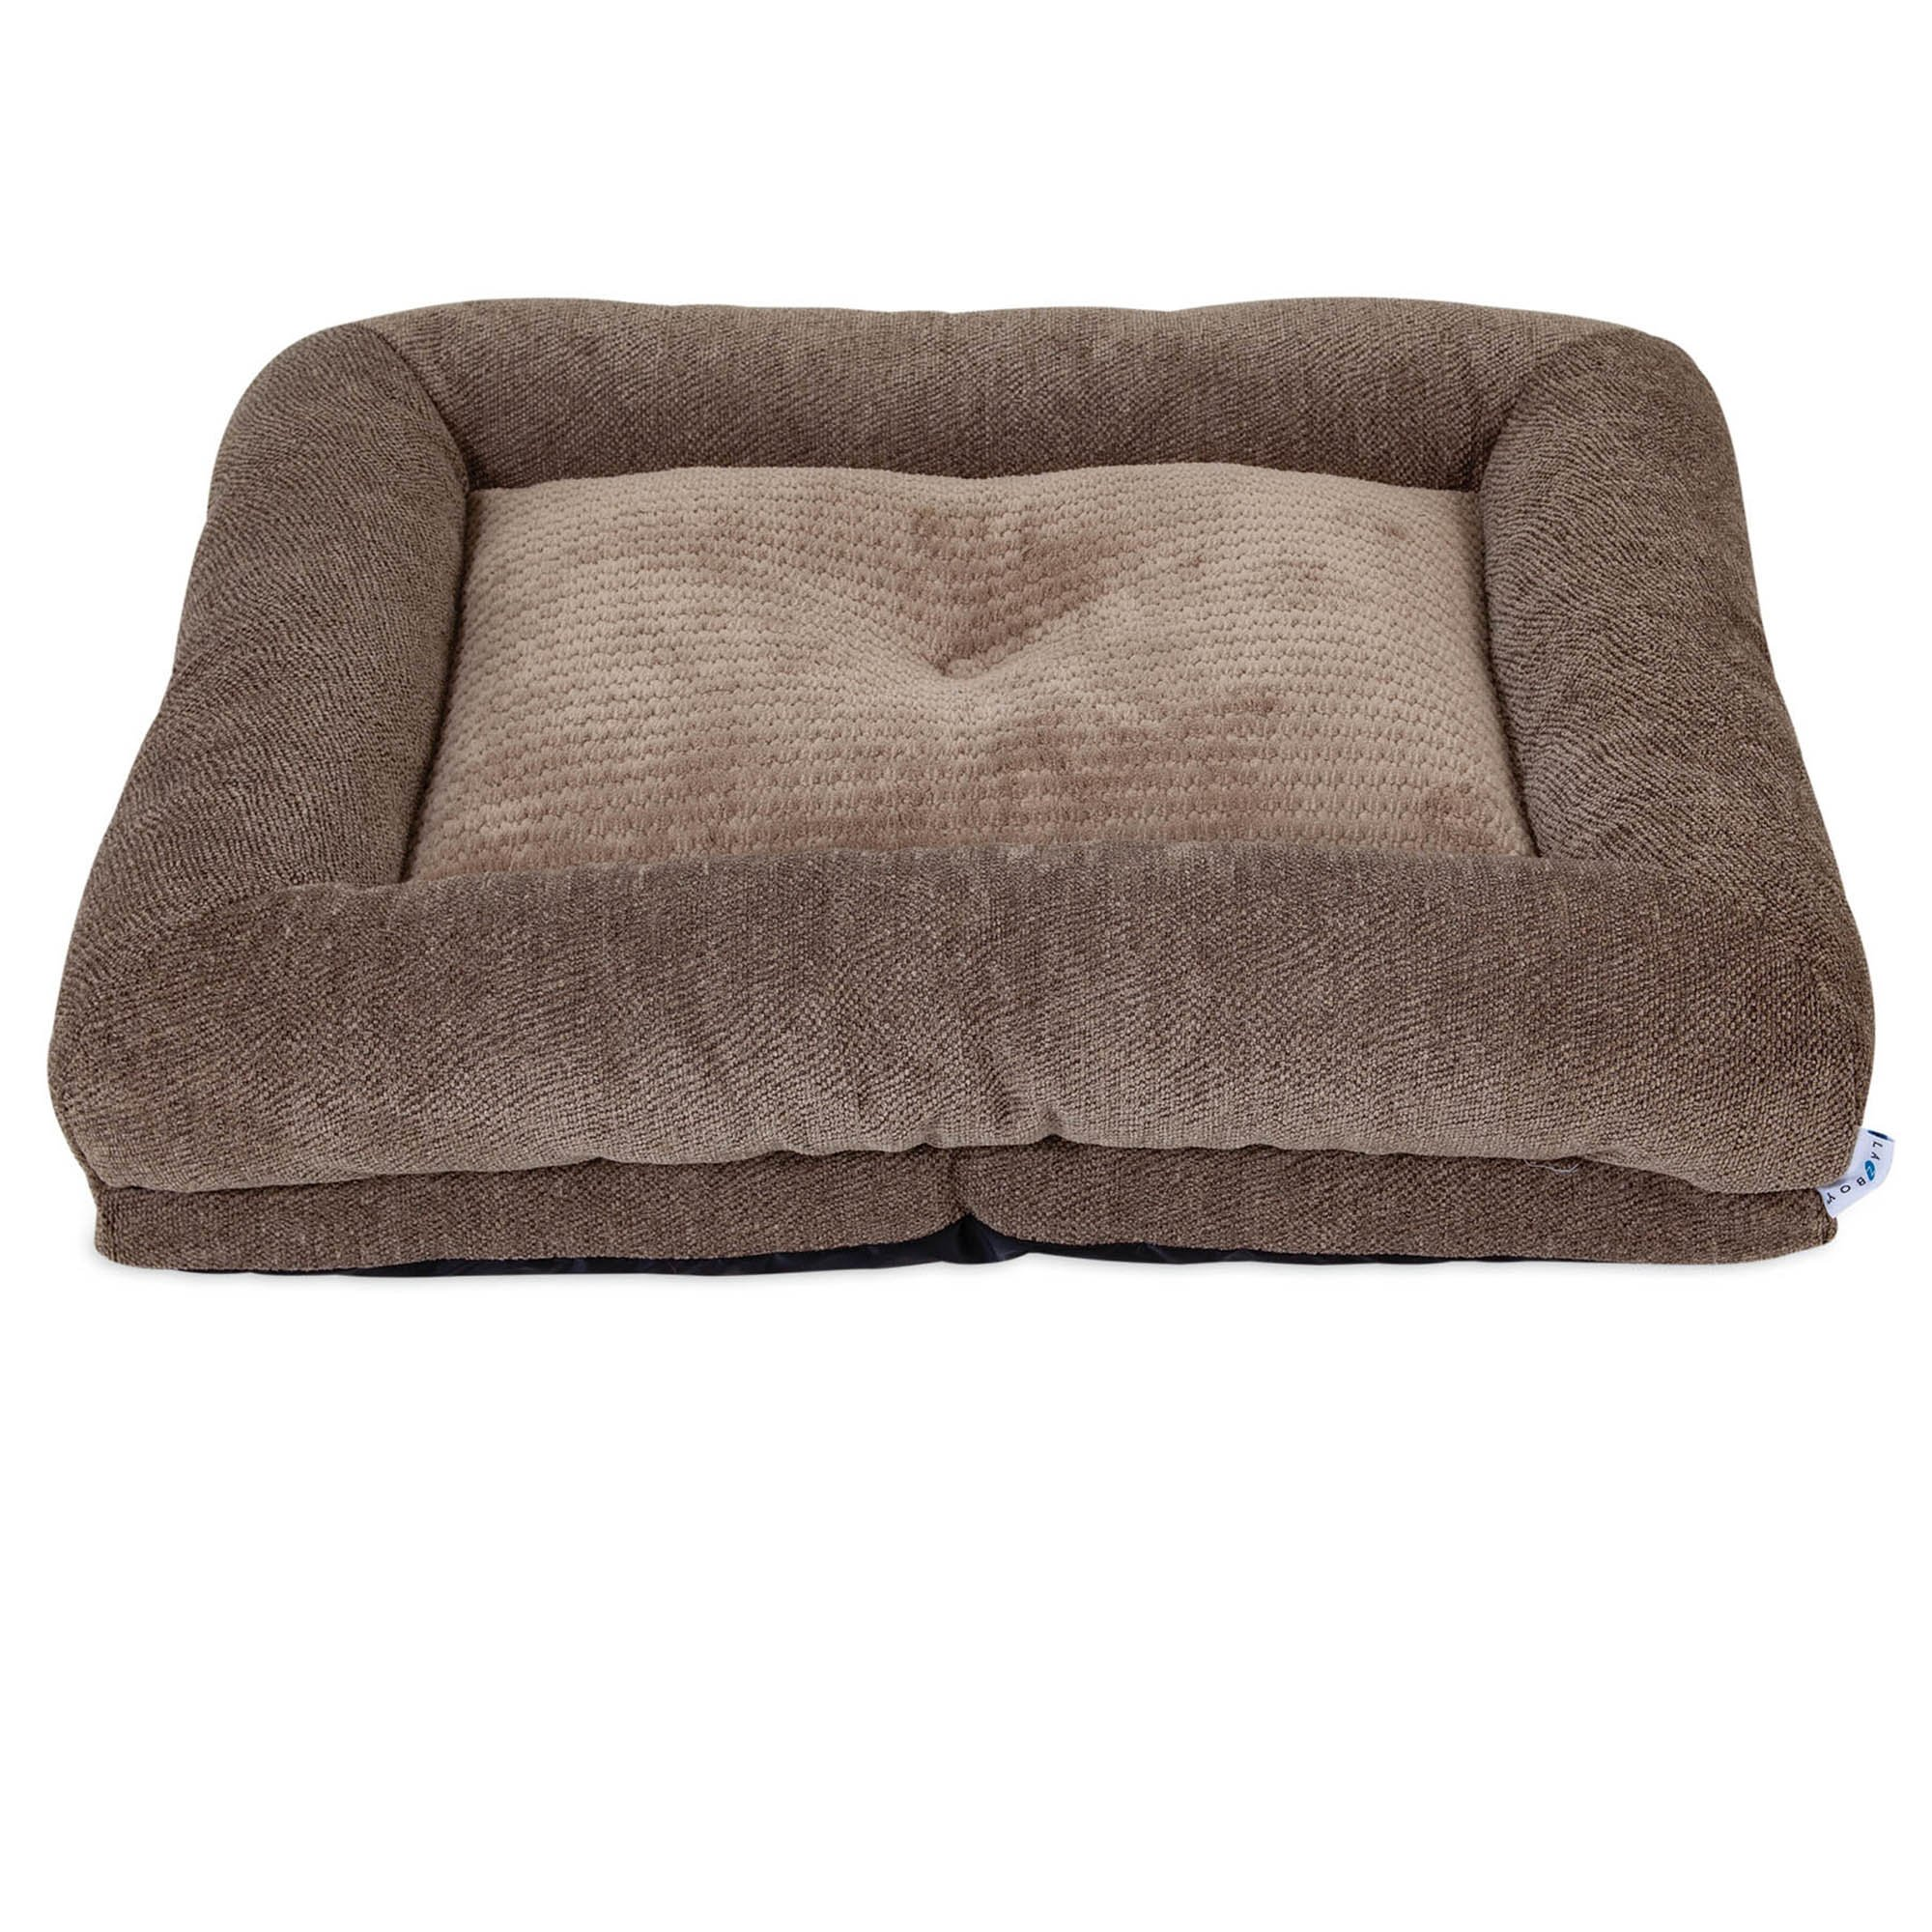 "La Z Boy Rosie Lounger Taupe Dog Bed, 35"" L X 27"" W, Large"